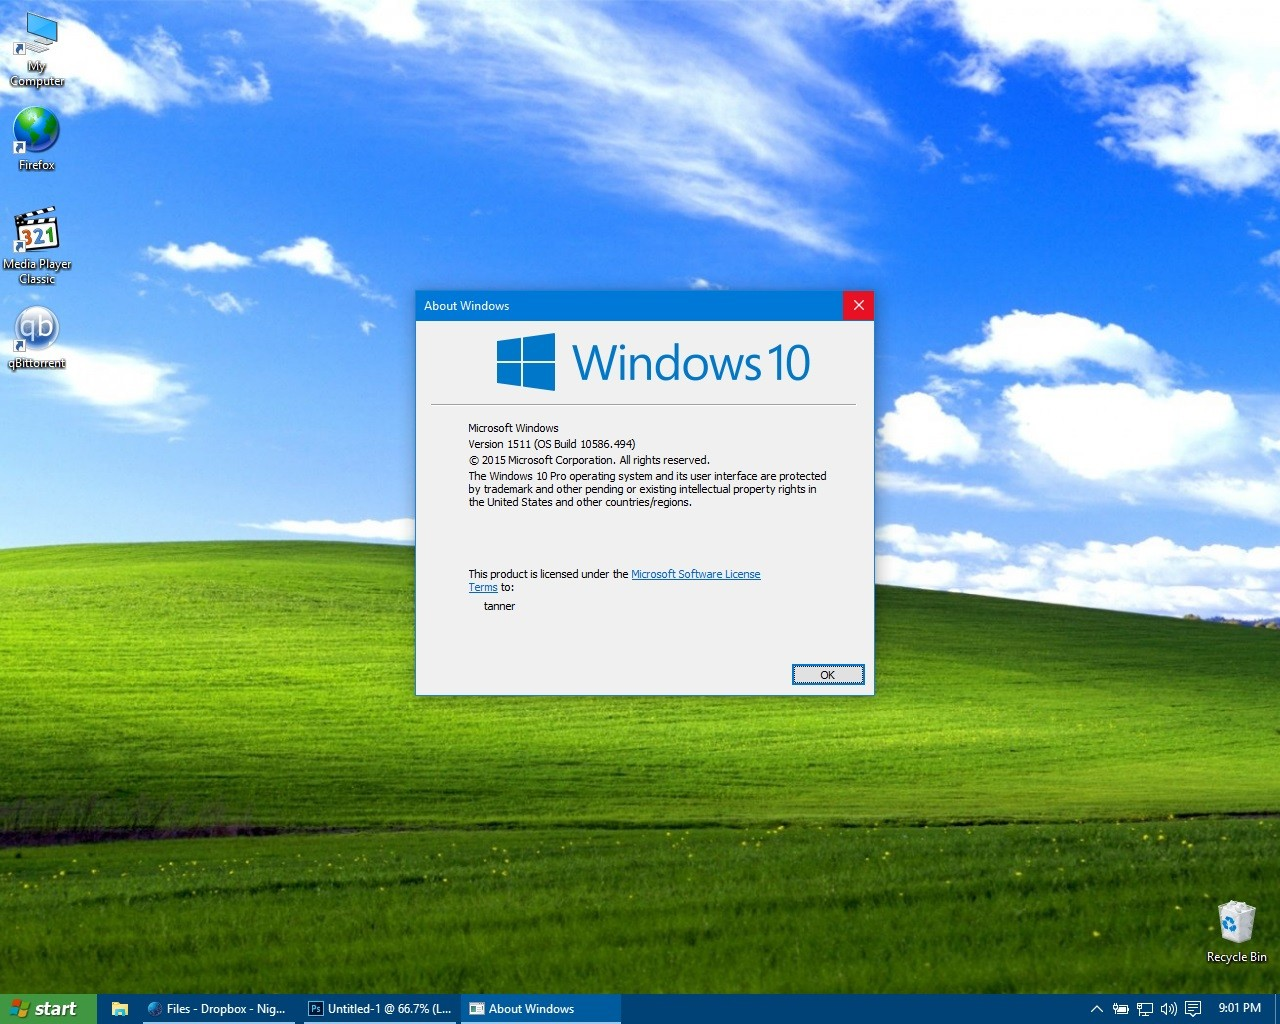 windows 10 now looking like windows xp because good operating